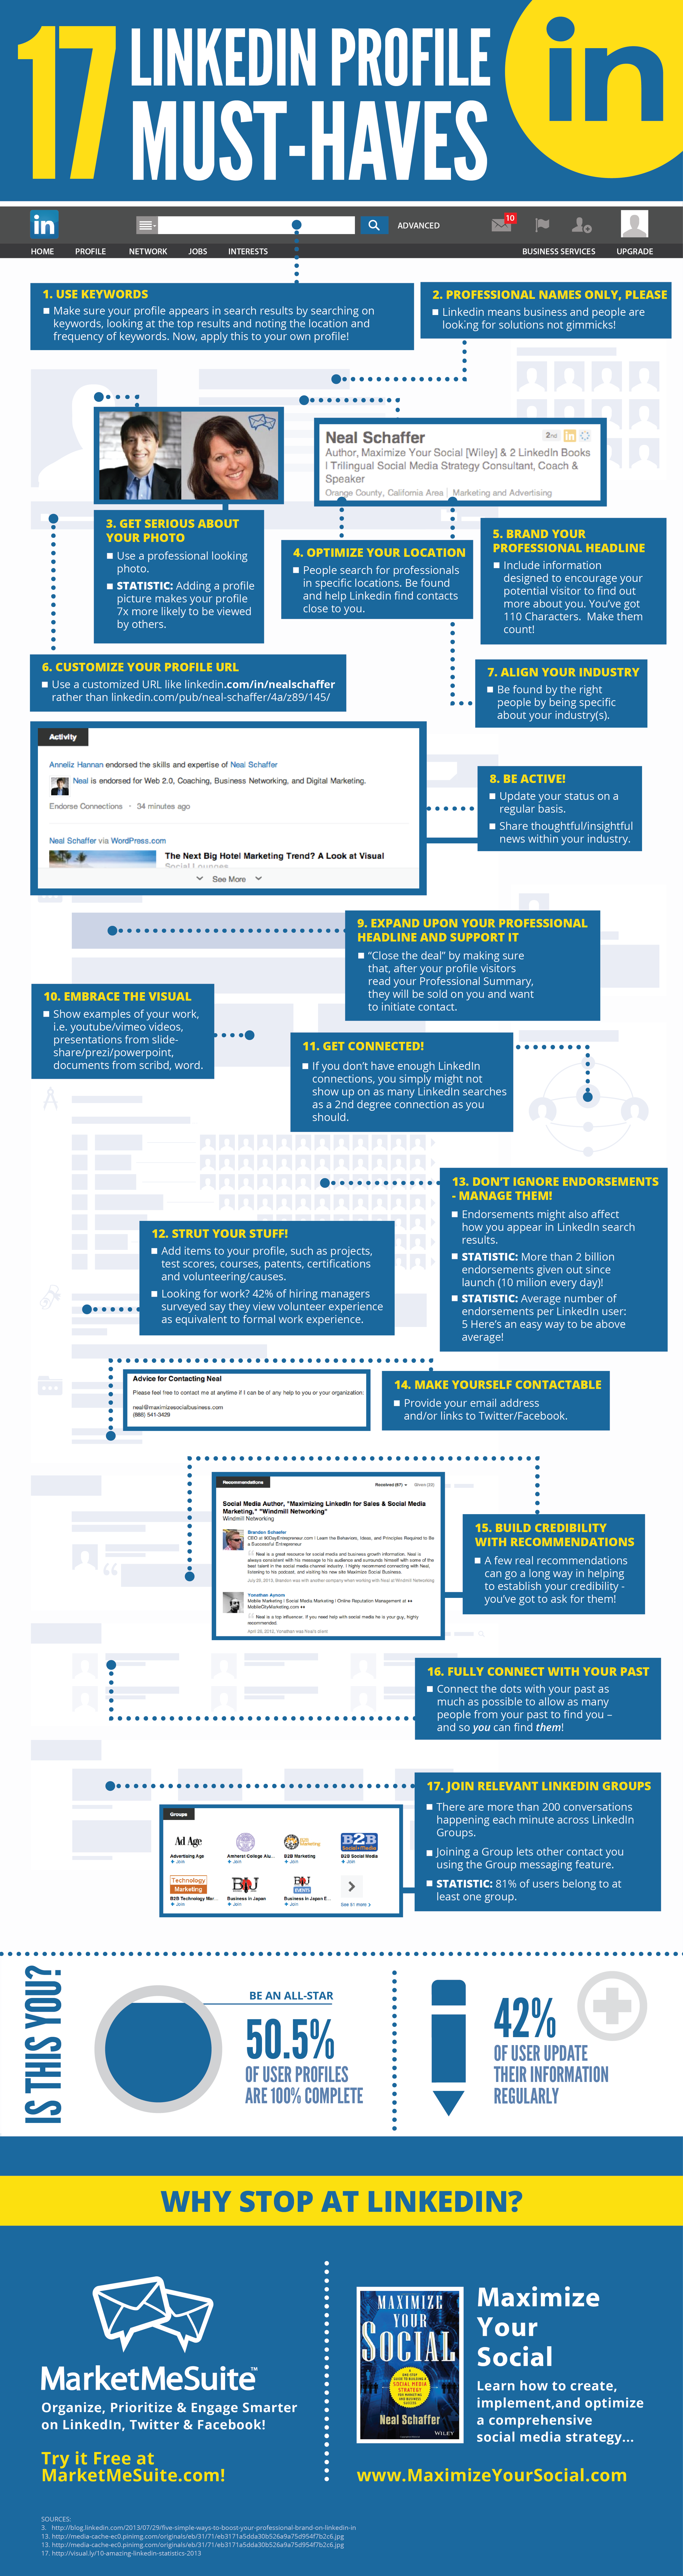 LinkedIn-Perfect-Profile-Tips-Summary-Infographic.png